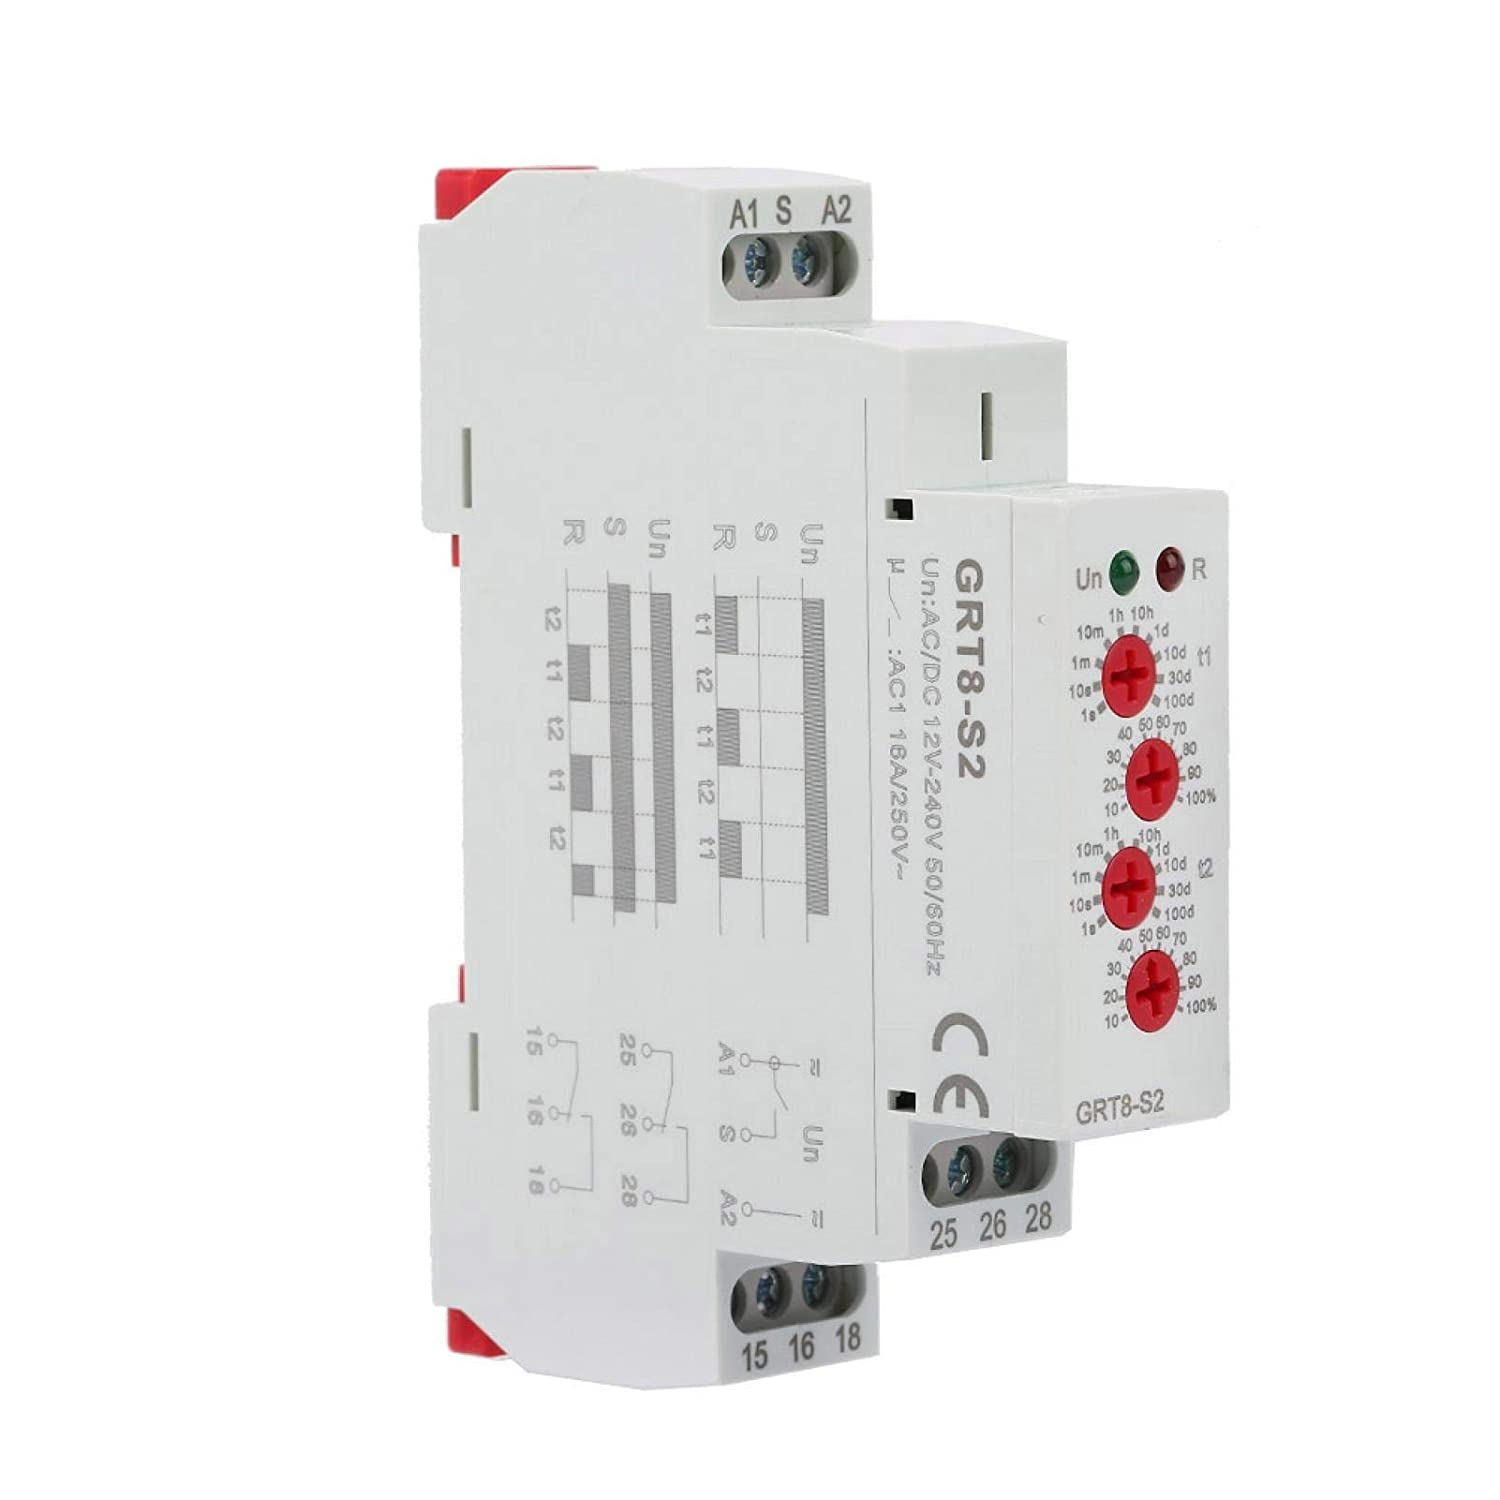 GRT8-S2 IP20 AC Dealing full price reduction DC 12-240V Mini wit Timer Translated Cycle Asymmetric Relay